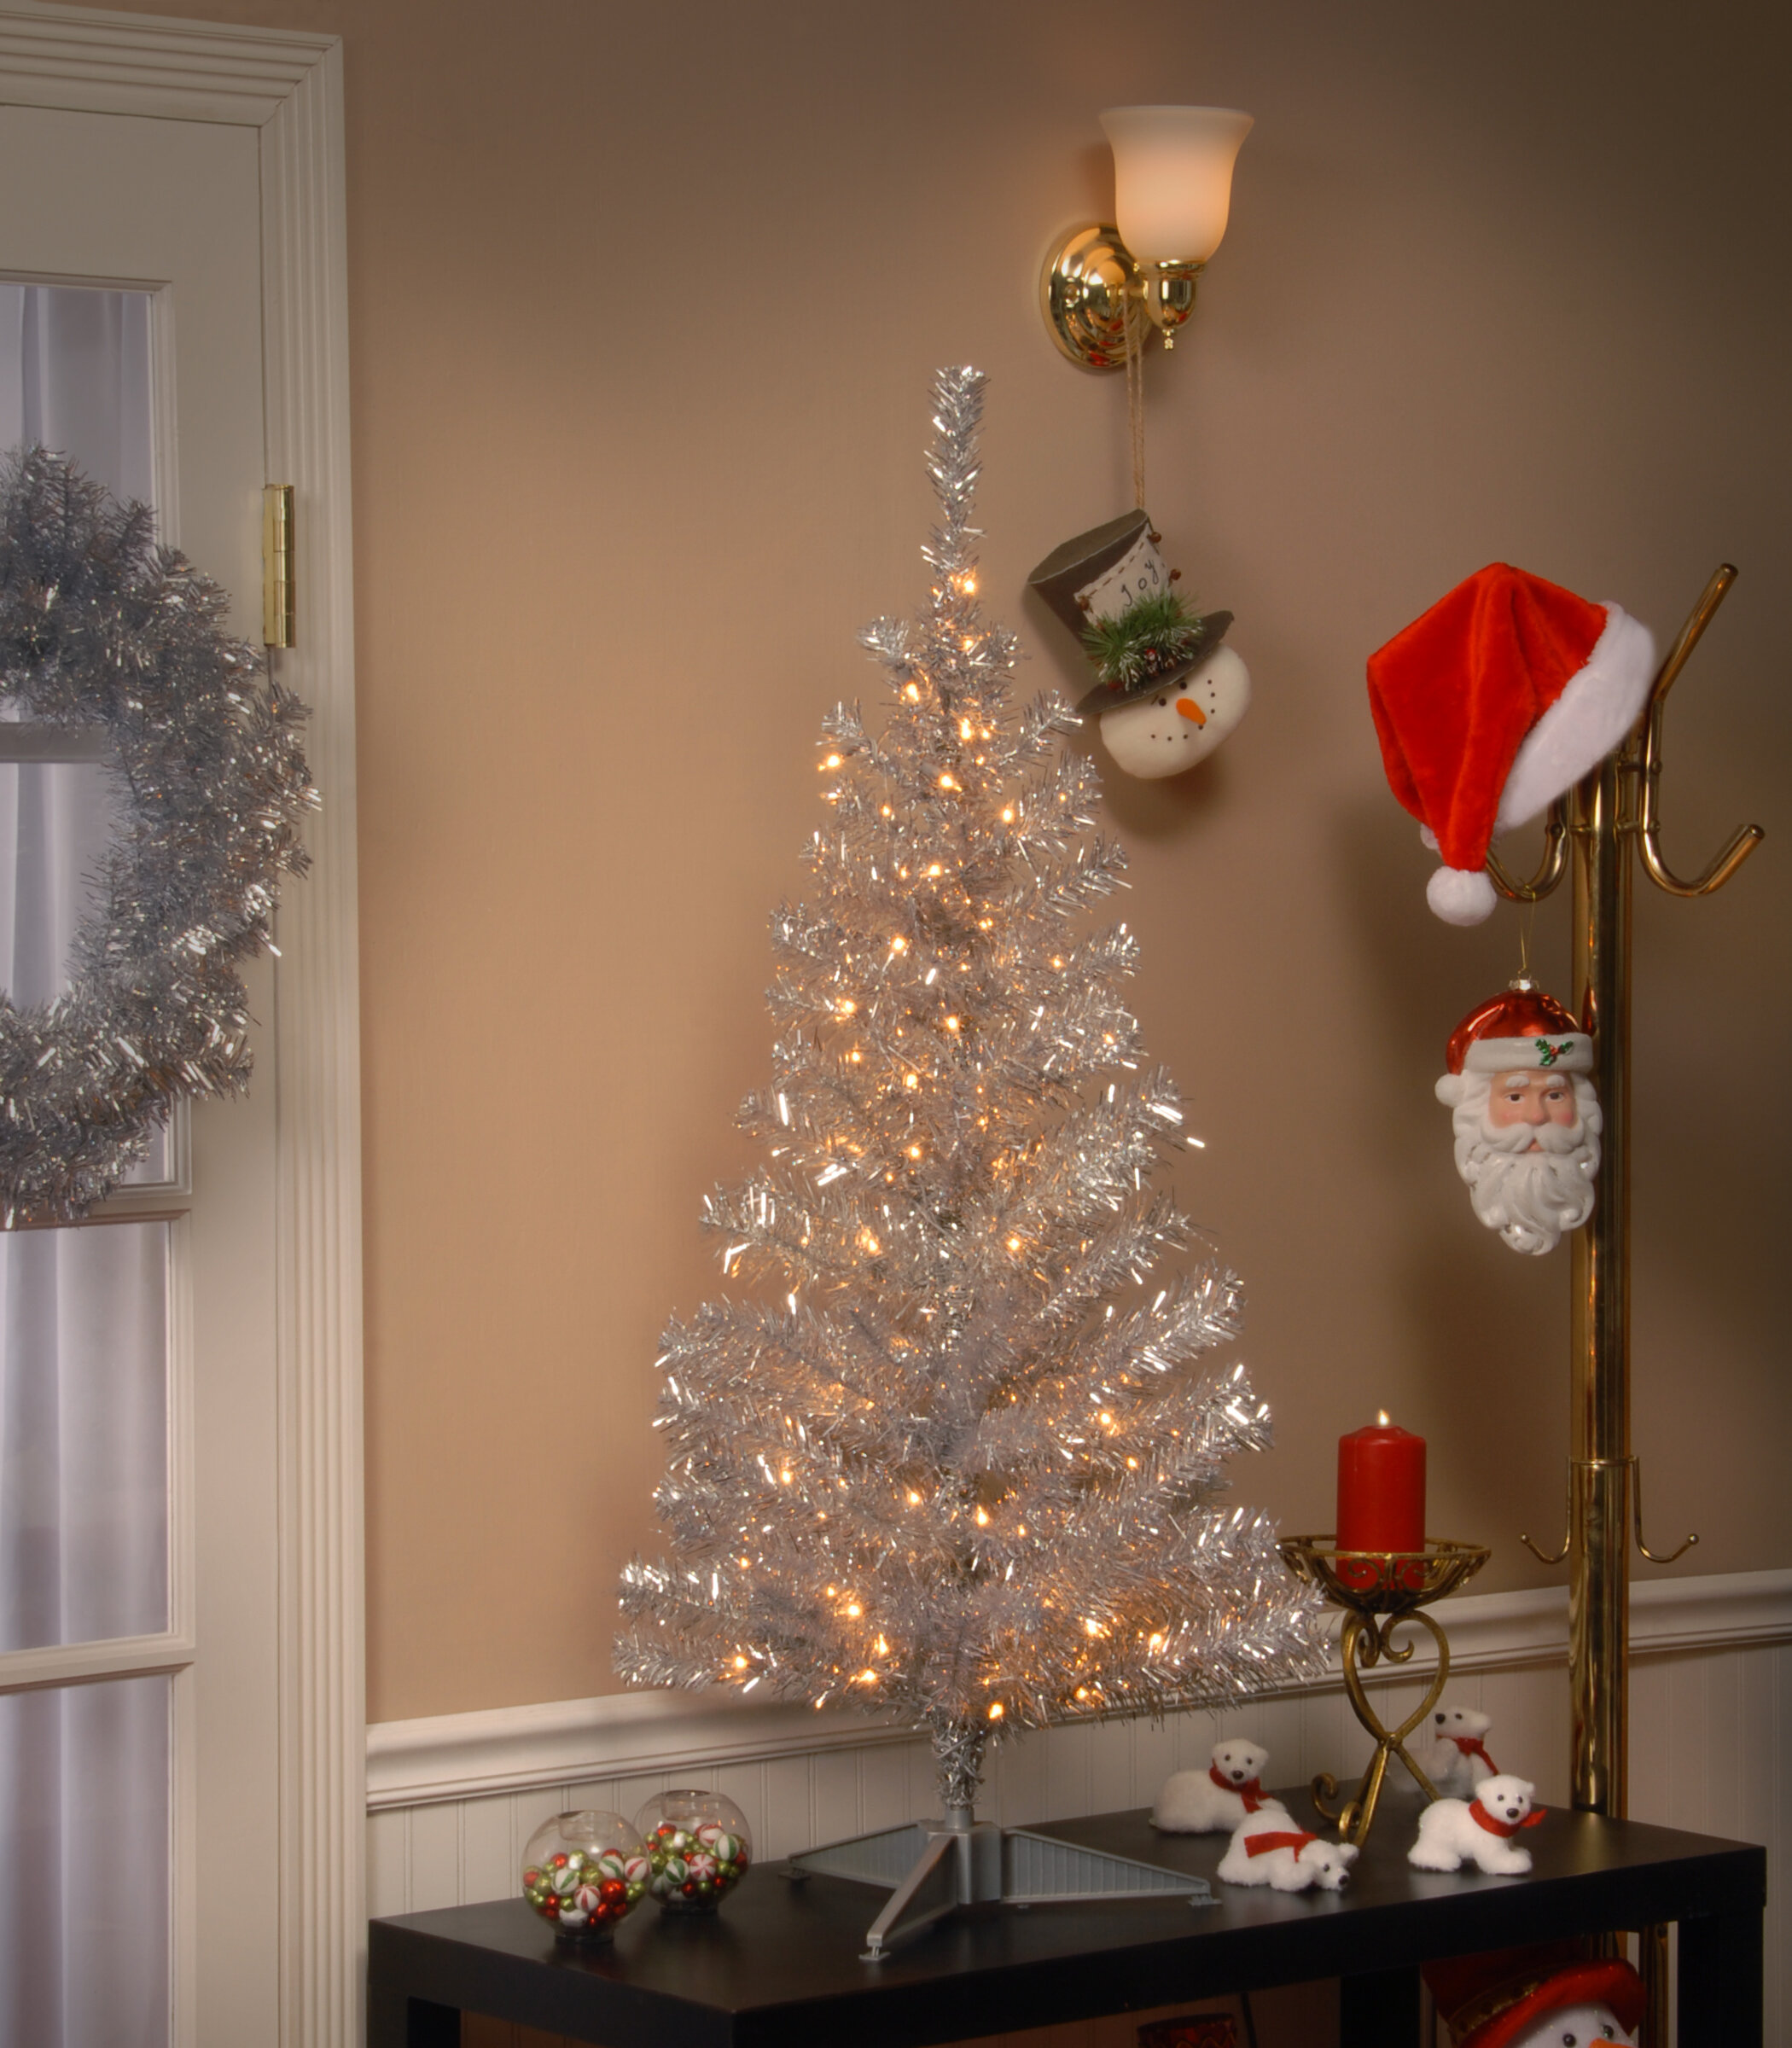 Tinsel Christmas Tree.The Holiday Aisle Tinsel Trees 4 Silver Artificial